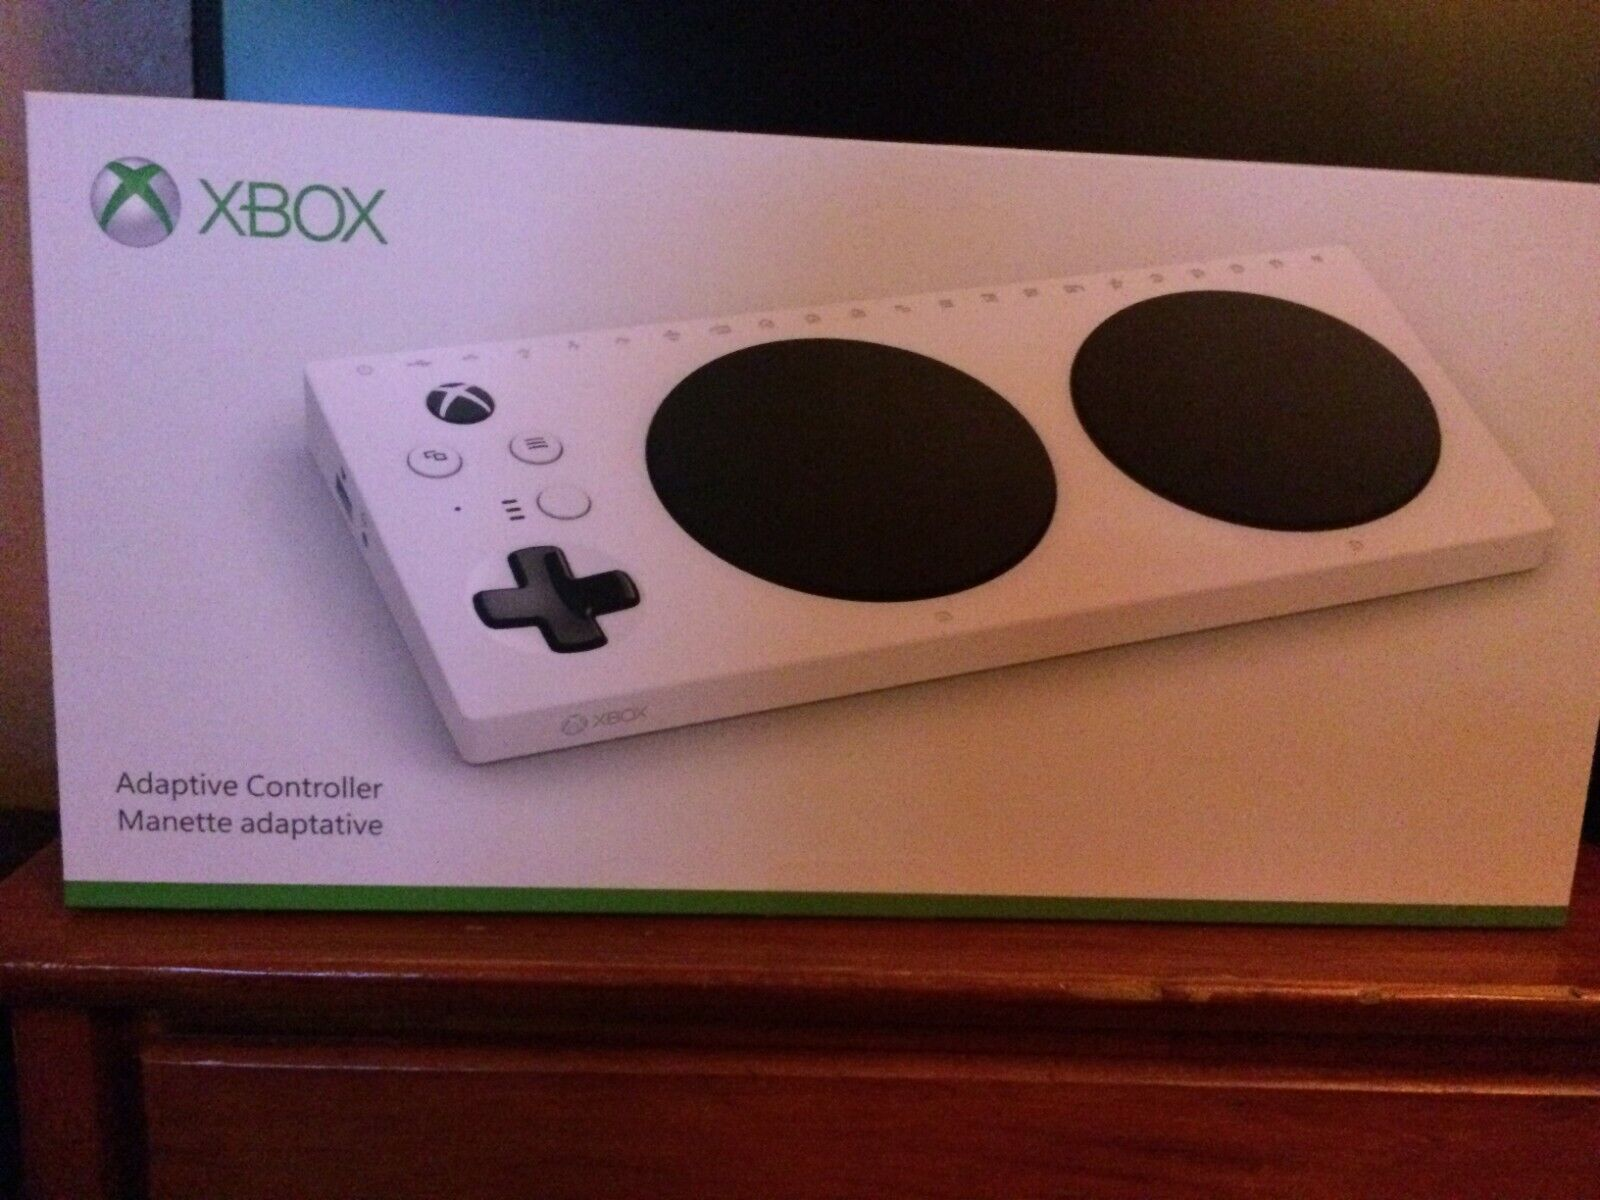 Microsoft Xbox Adaptive Controller With All Original Packaging - $50.00